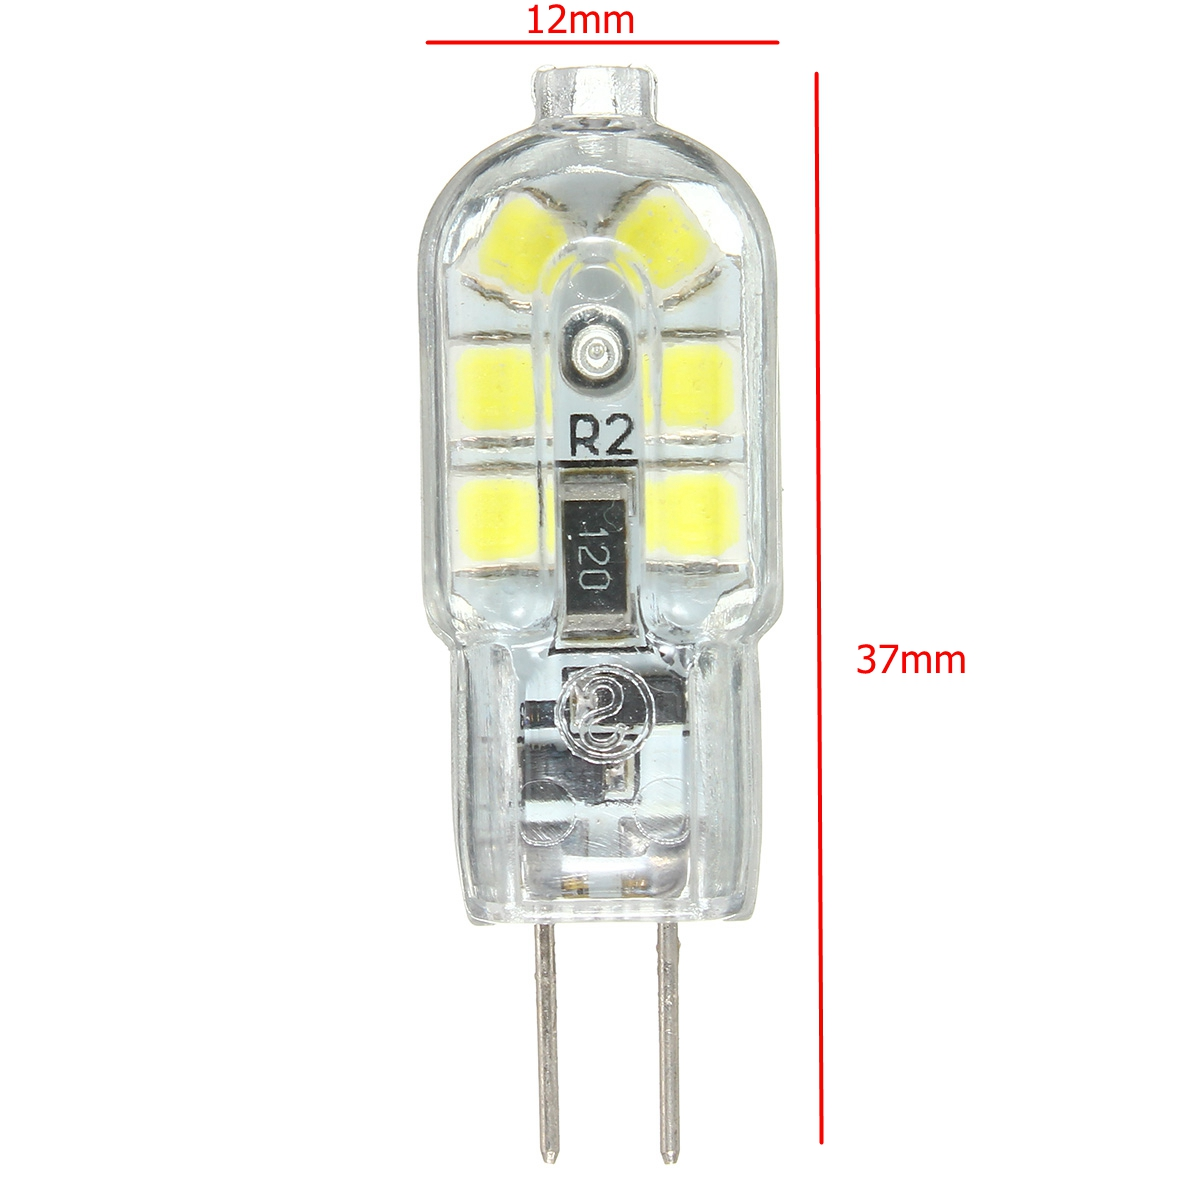 10PCS G4 2W 2835 Non-dimmable Cool White Transparent 12 LED Light Bulb for Indoor DC12V